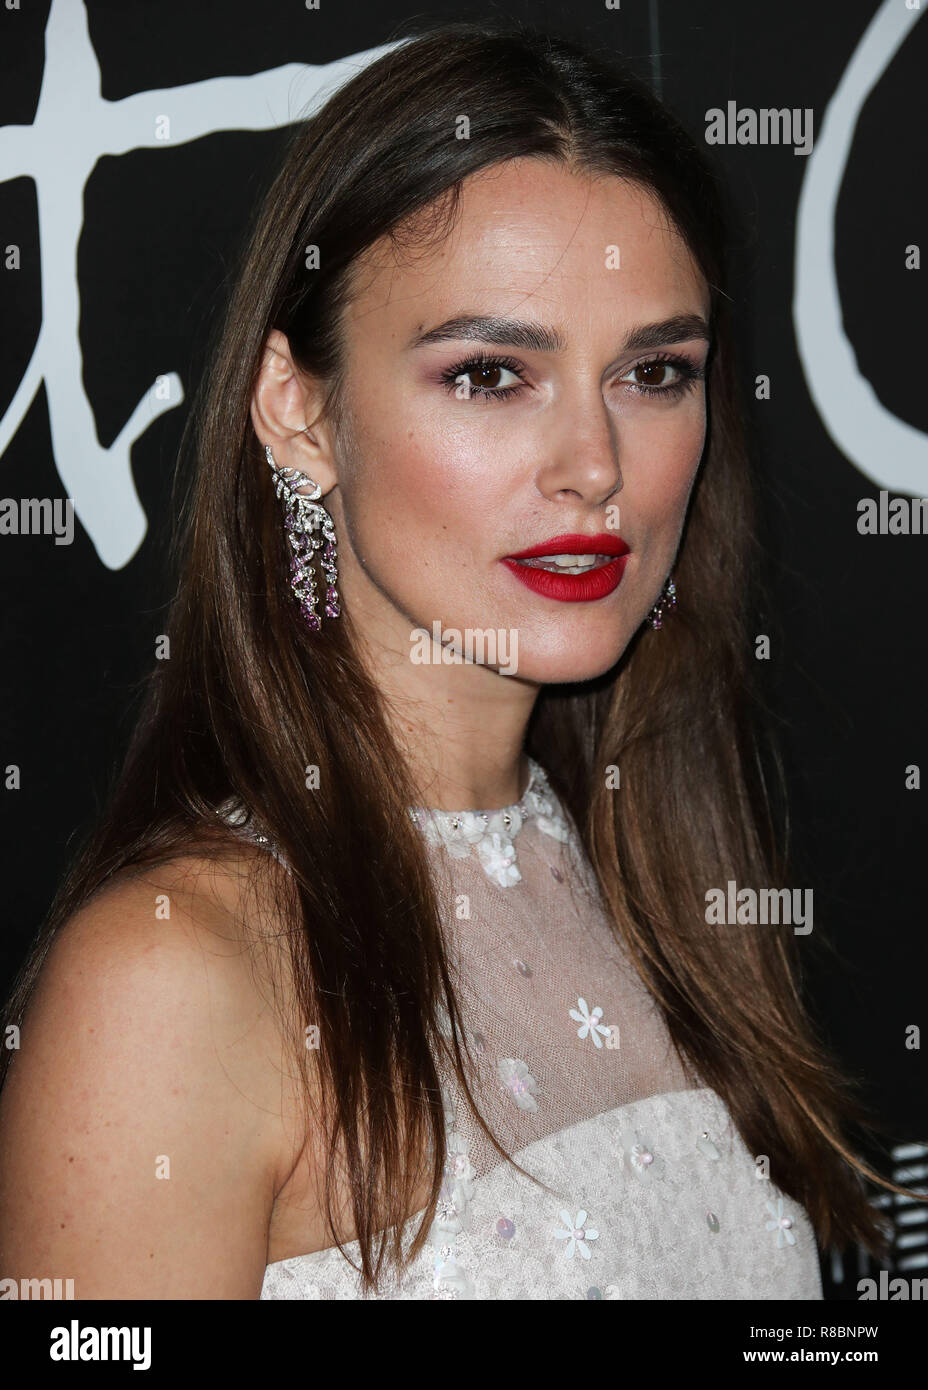 BEVERLY HILLS, LOS ANGELES, CA, USA - SEPTEMBER 14: Actress Keira Knightley arrives at the Los Angeles Premiere Of Bleecker Street Media's 'Colette' held at the Samuel Goldwyn Theater at The Academy of Motion Picture Arts and Sciences on September 14, 2018 in Beverly Hills, Los Angeles, California, United States. (Photo by Xavier Collin/Image Press Agency) - Stock Image